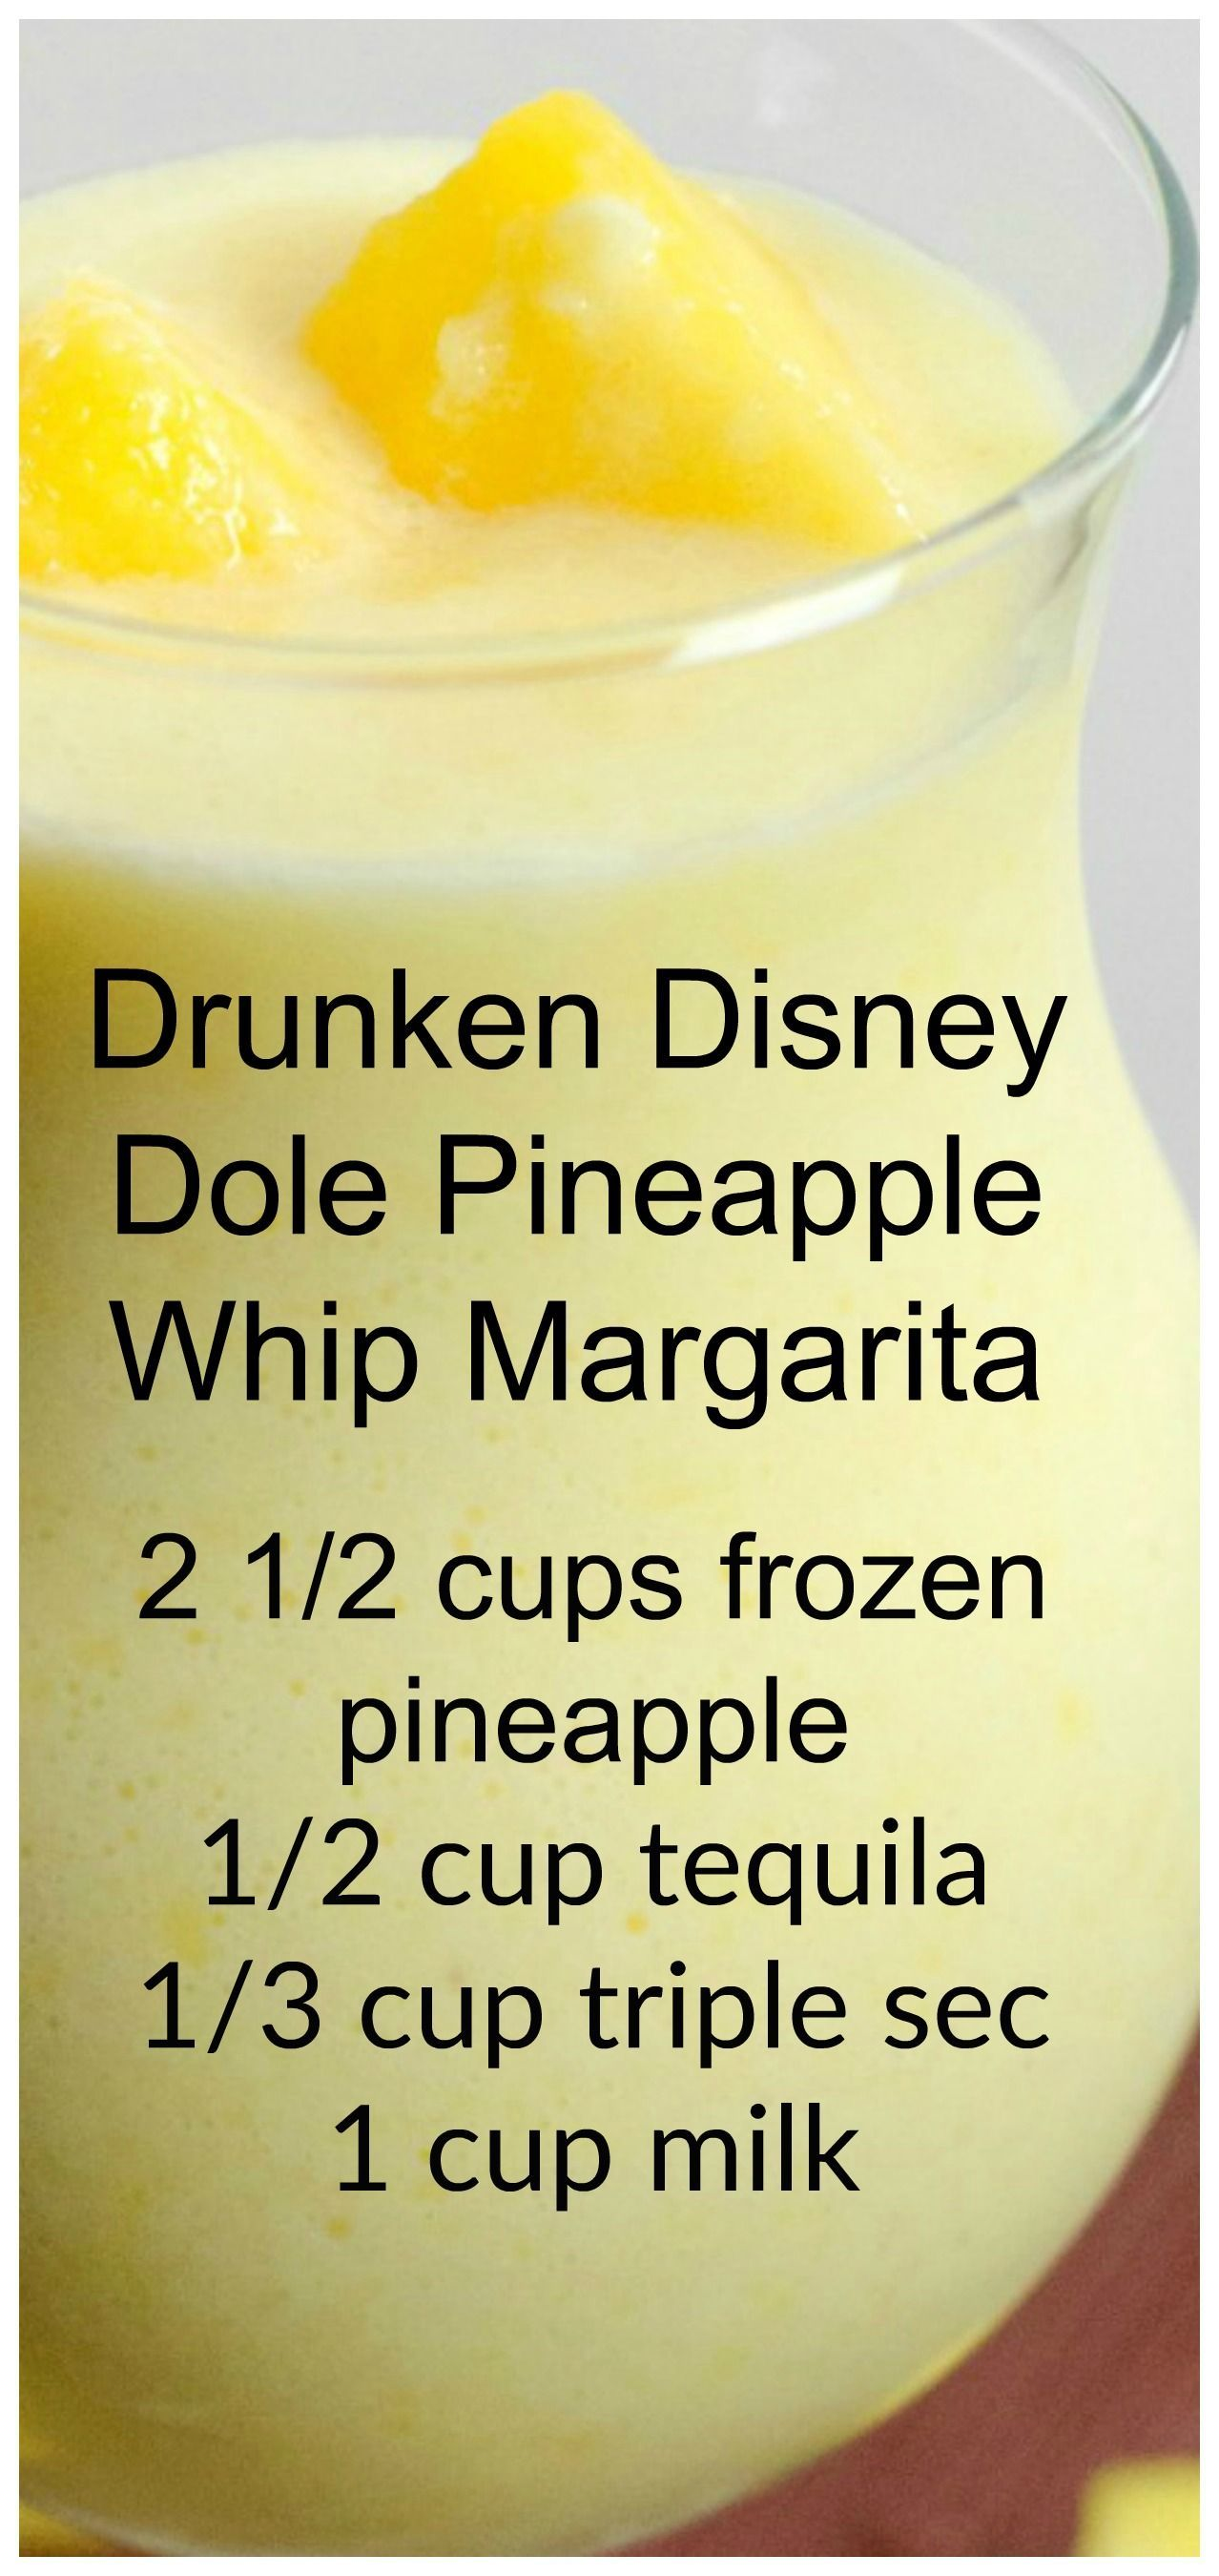 Drunken Disney Dole Pineapple Whip Margarita!